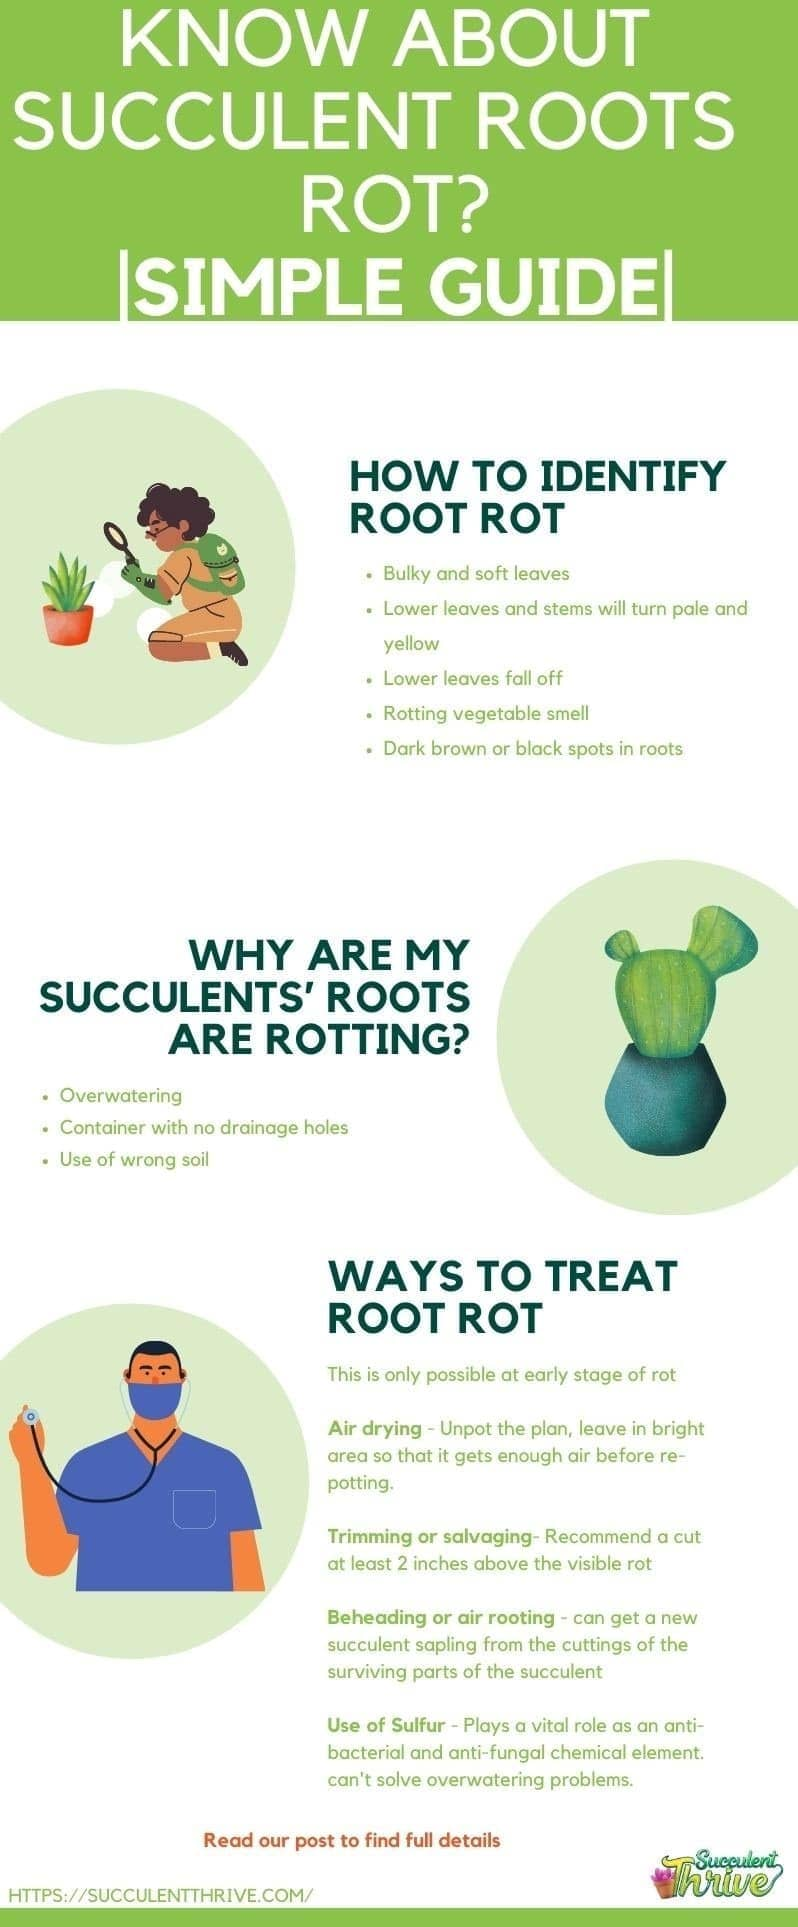 How do I know If My Succulent Roots are Rotting Simple Guide (2)